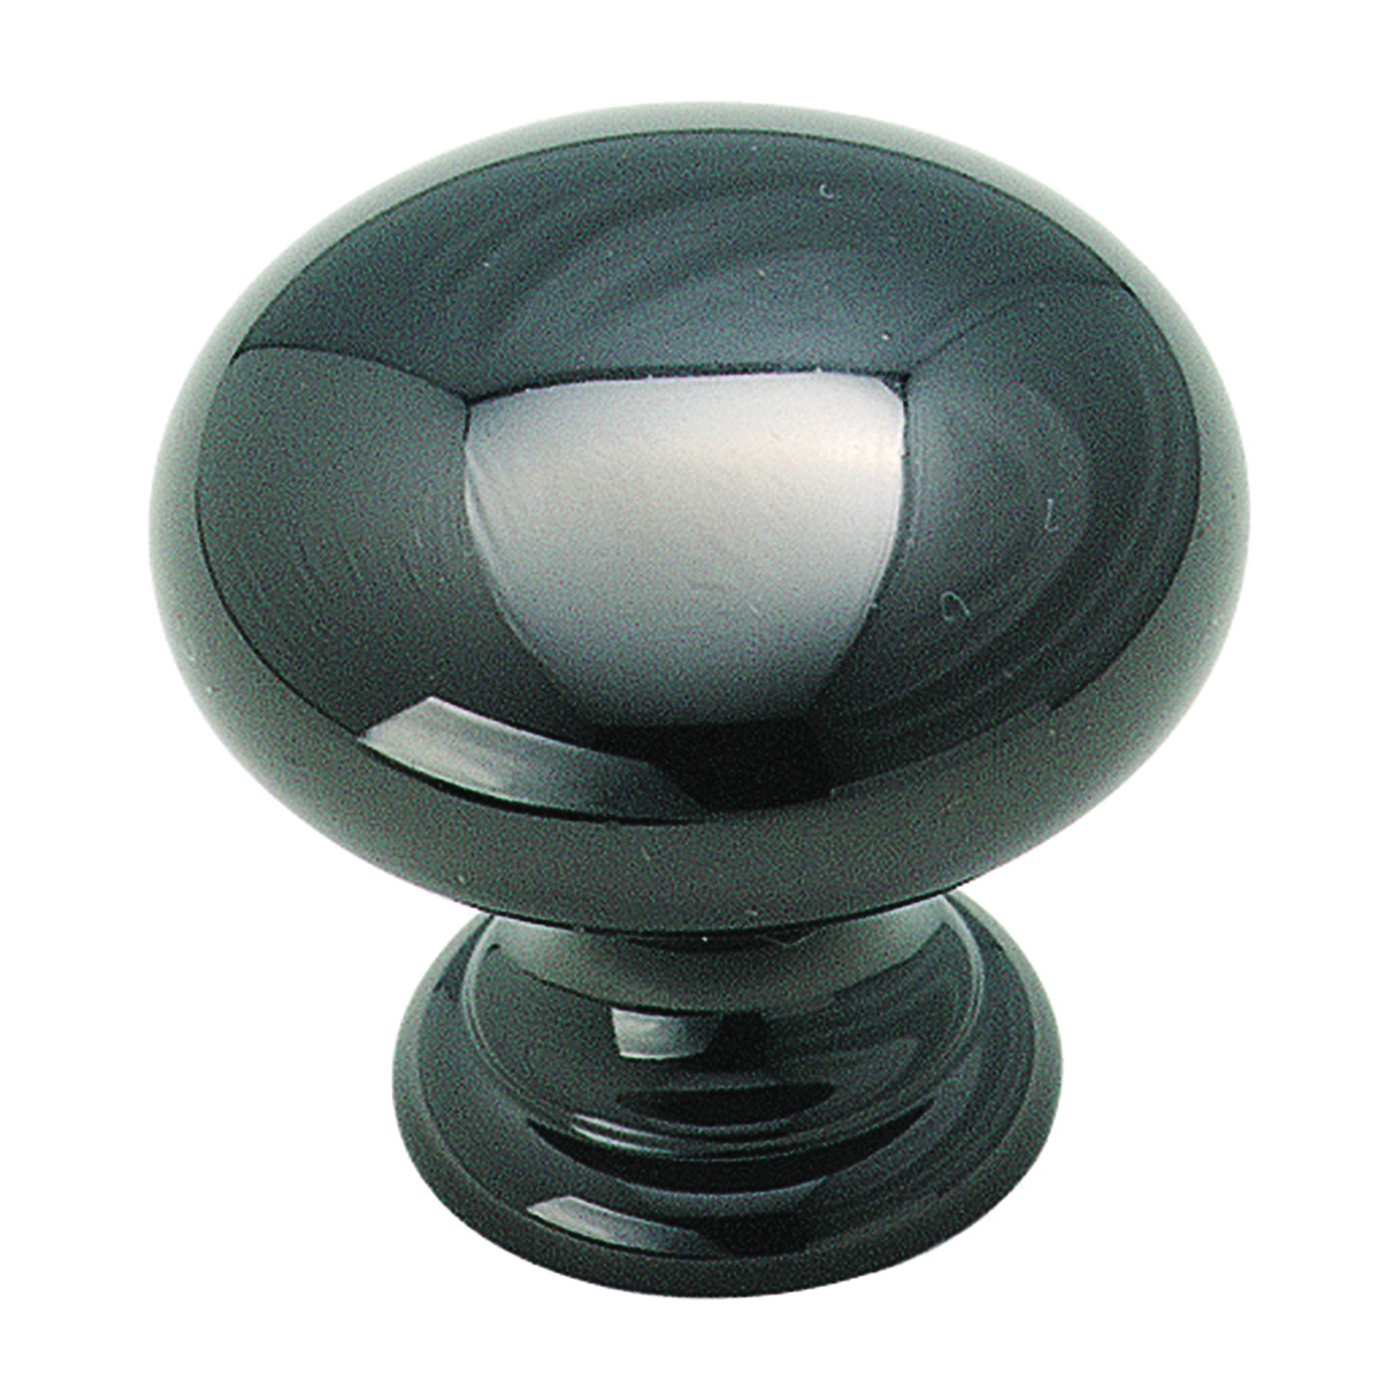 Picture of Amerock BP1950BNB Cabinet Knob, 1-1/8 in Projection, Brass, Black Nickel